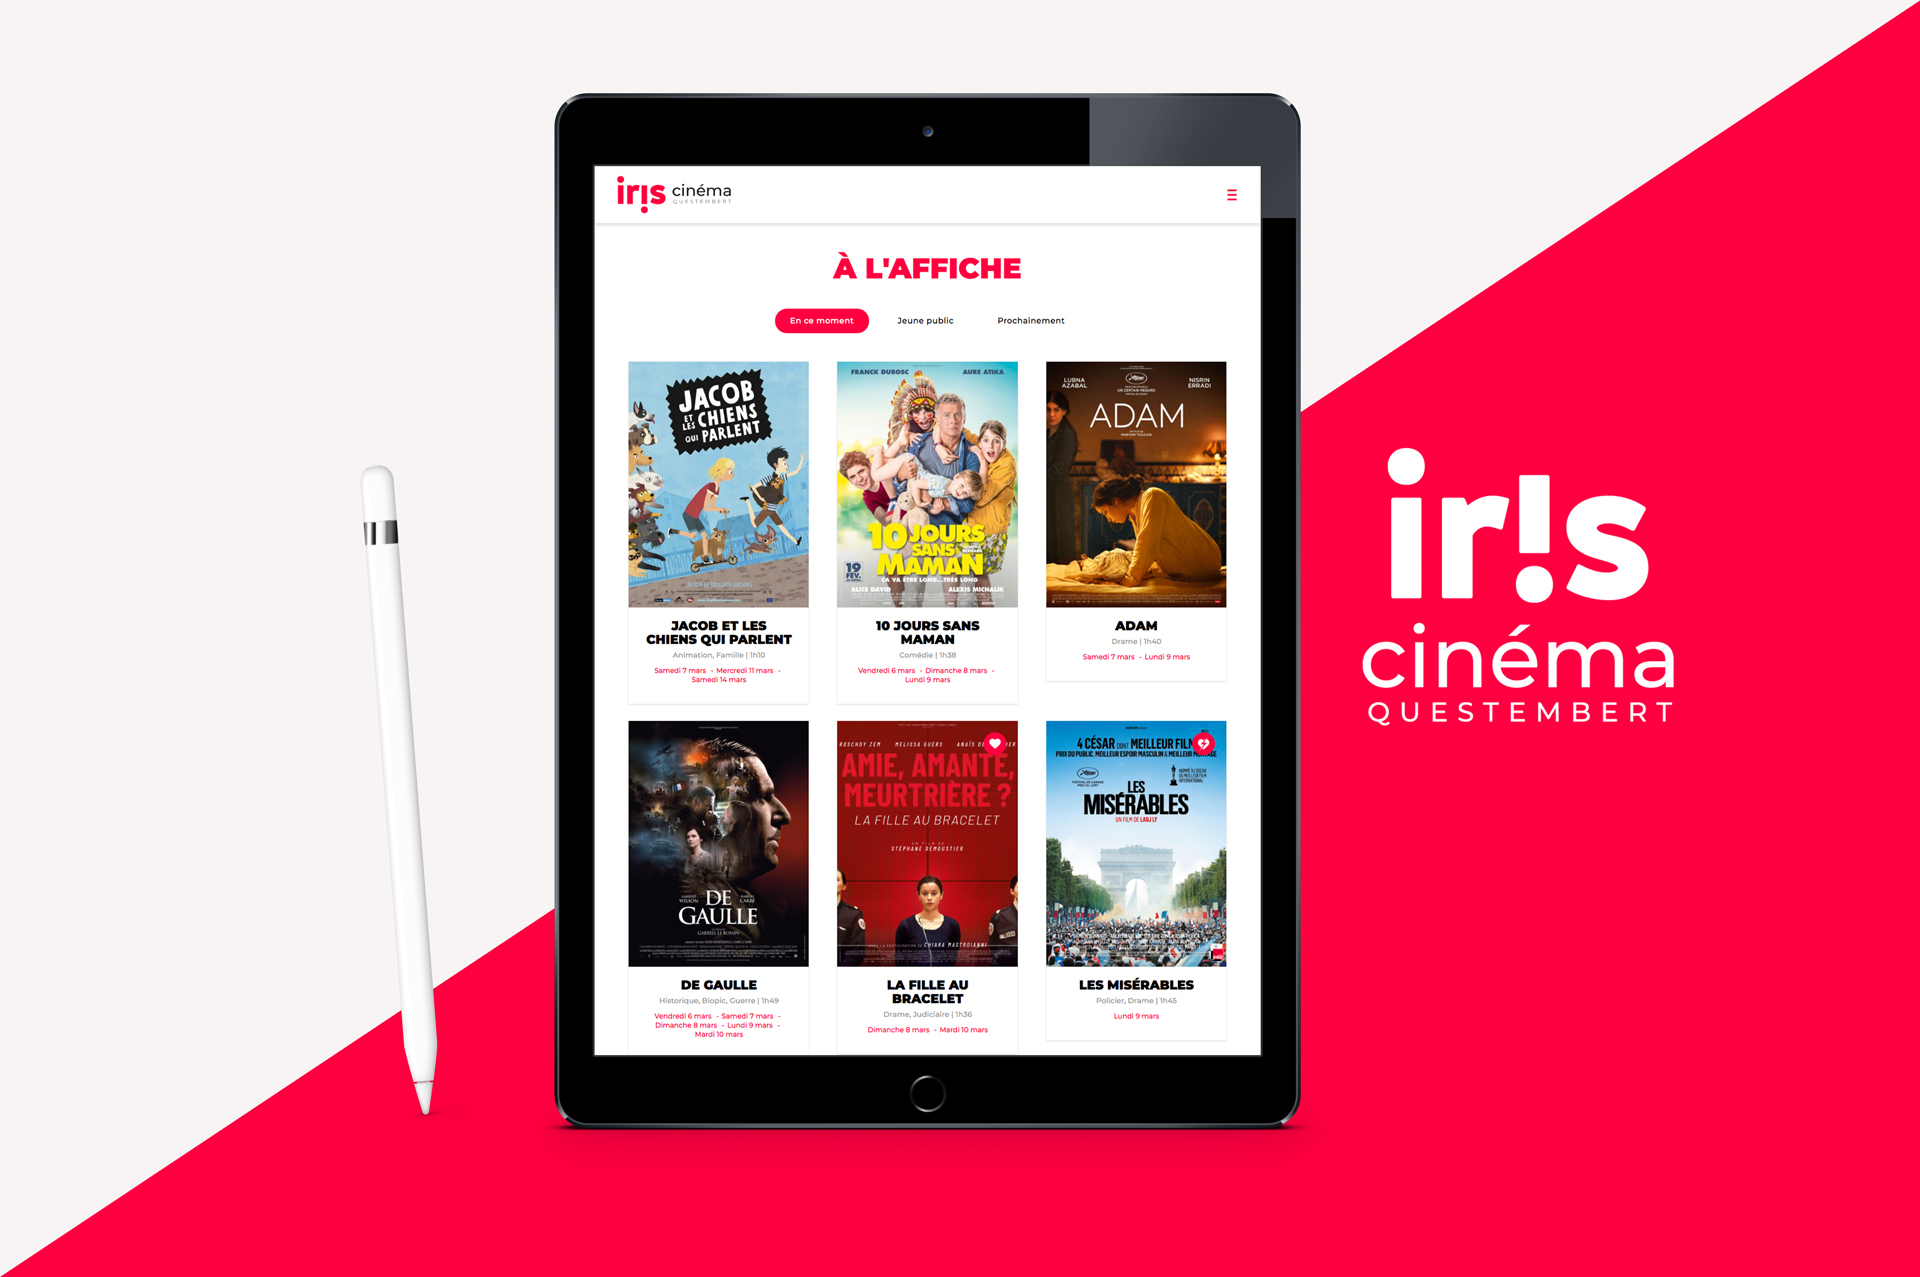 iris-cinema-webdesign-ipad-coqueliko